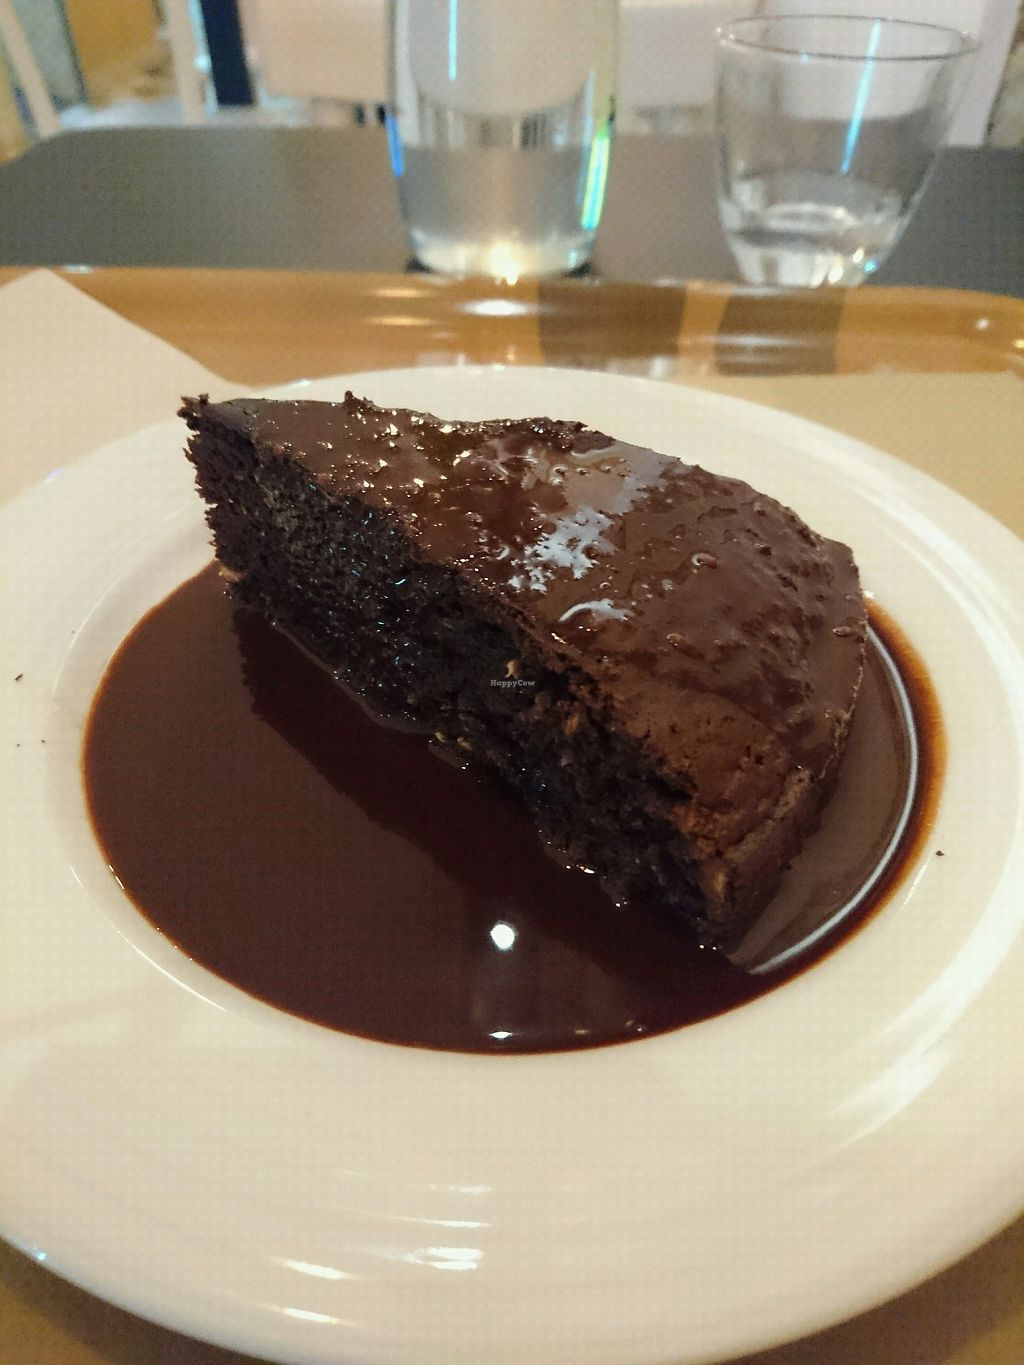 """Photo of 2Y  by <a href=""""/members/profile/moonriver"""">moonriver</a> <br/>tarta de chocolate  <br/> October 20, 2017  - <a href='/contact/abuse/image/69080/316966'>Report</a>"""